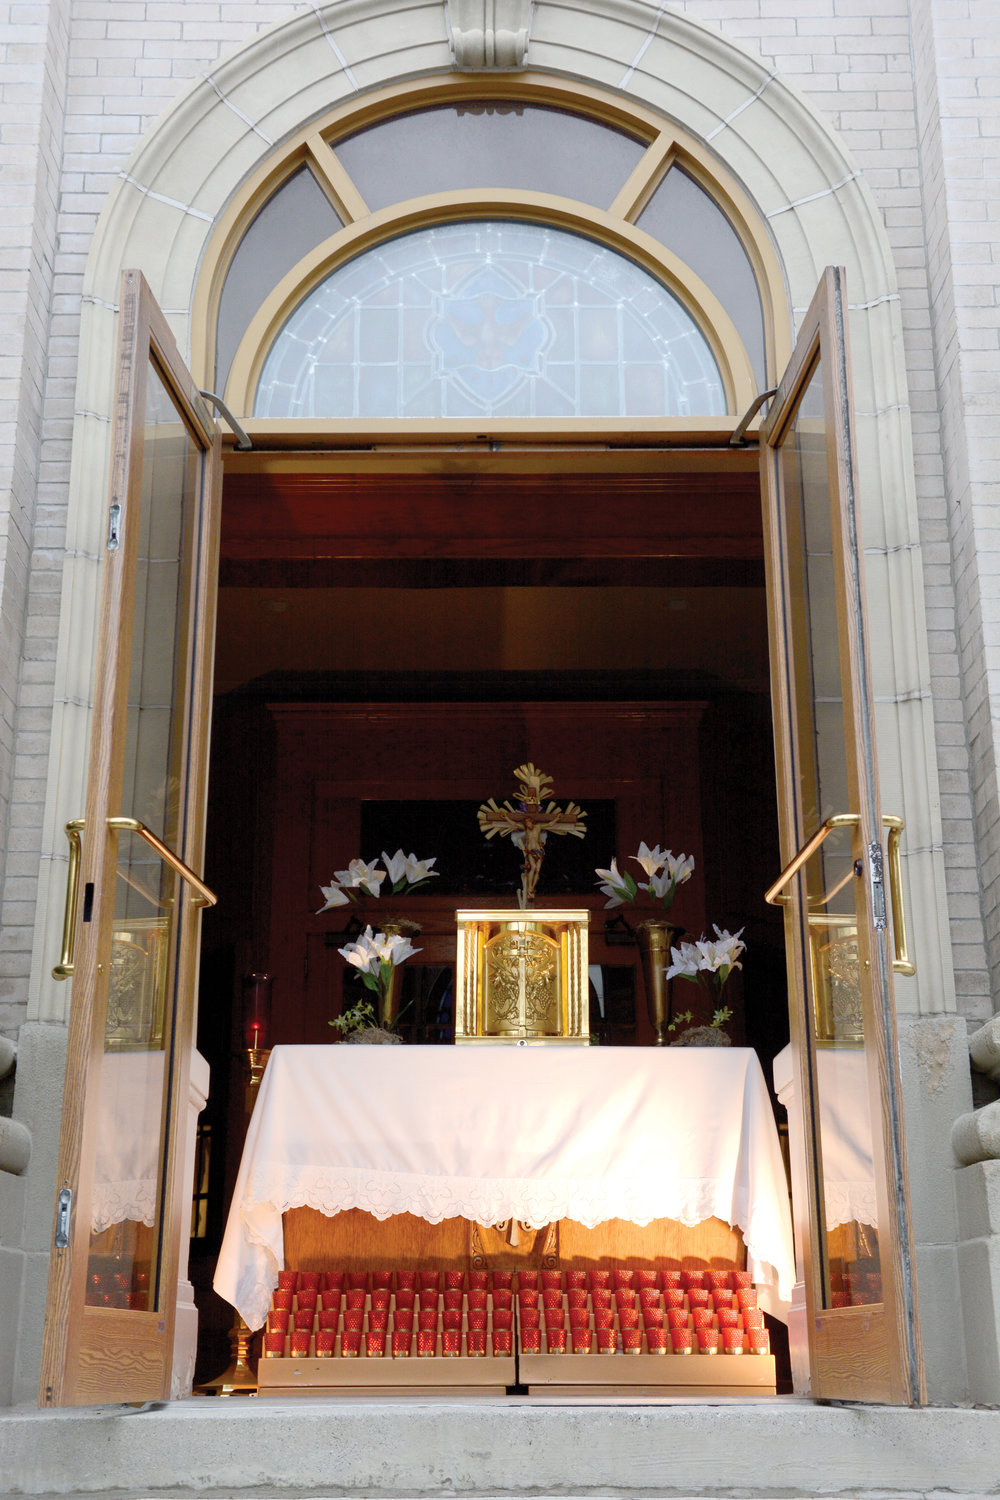 HOPE AND HEALTH—The Blessed Sacrament, in the tabernacle near the front doors of St. Barnabas Church, the Bronx, offers respite for parishioners who pass by.